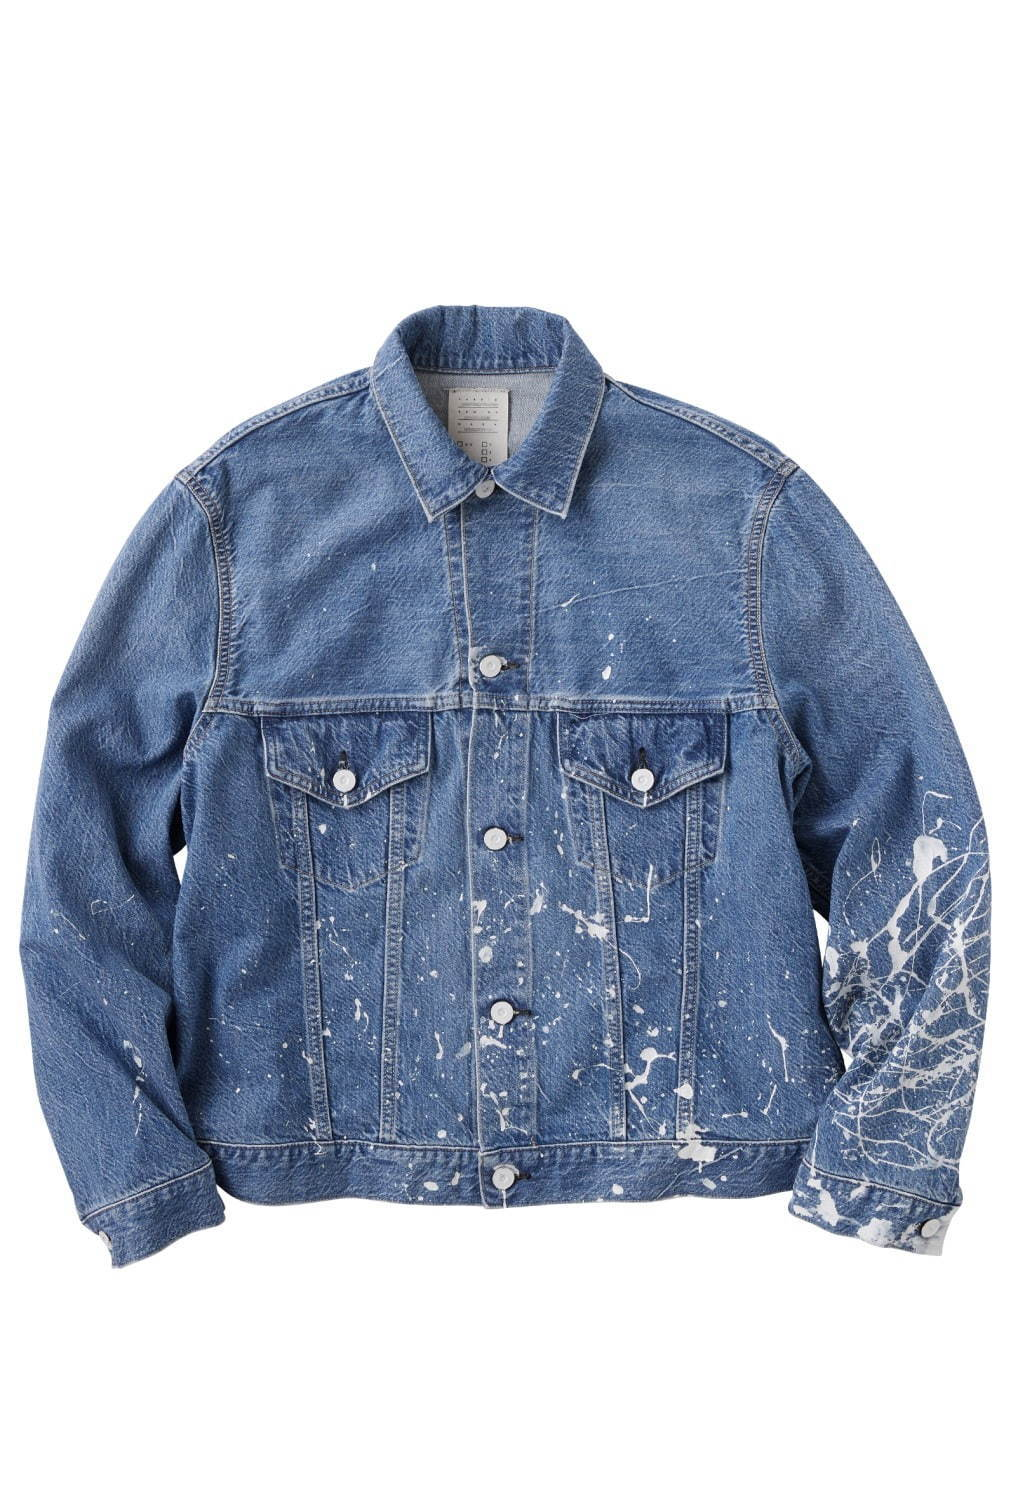 KARLA PAINT DENIM JACKET 28,000円+税